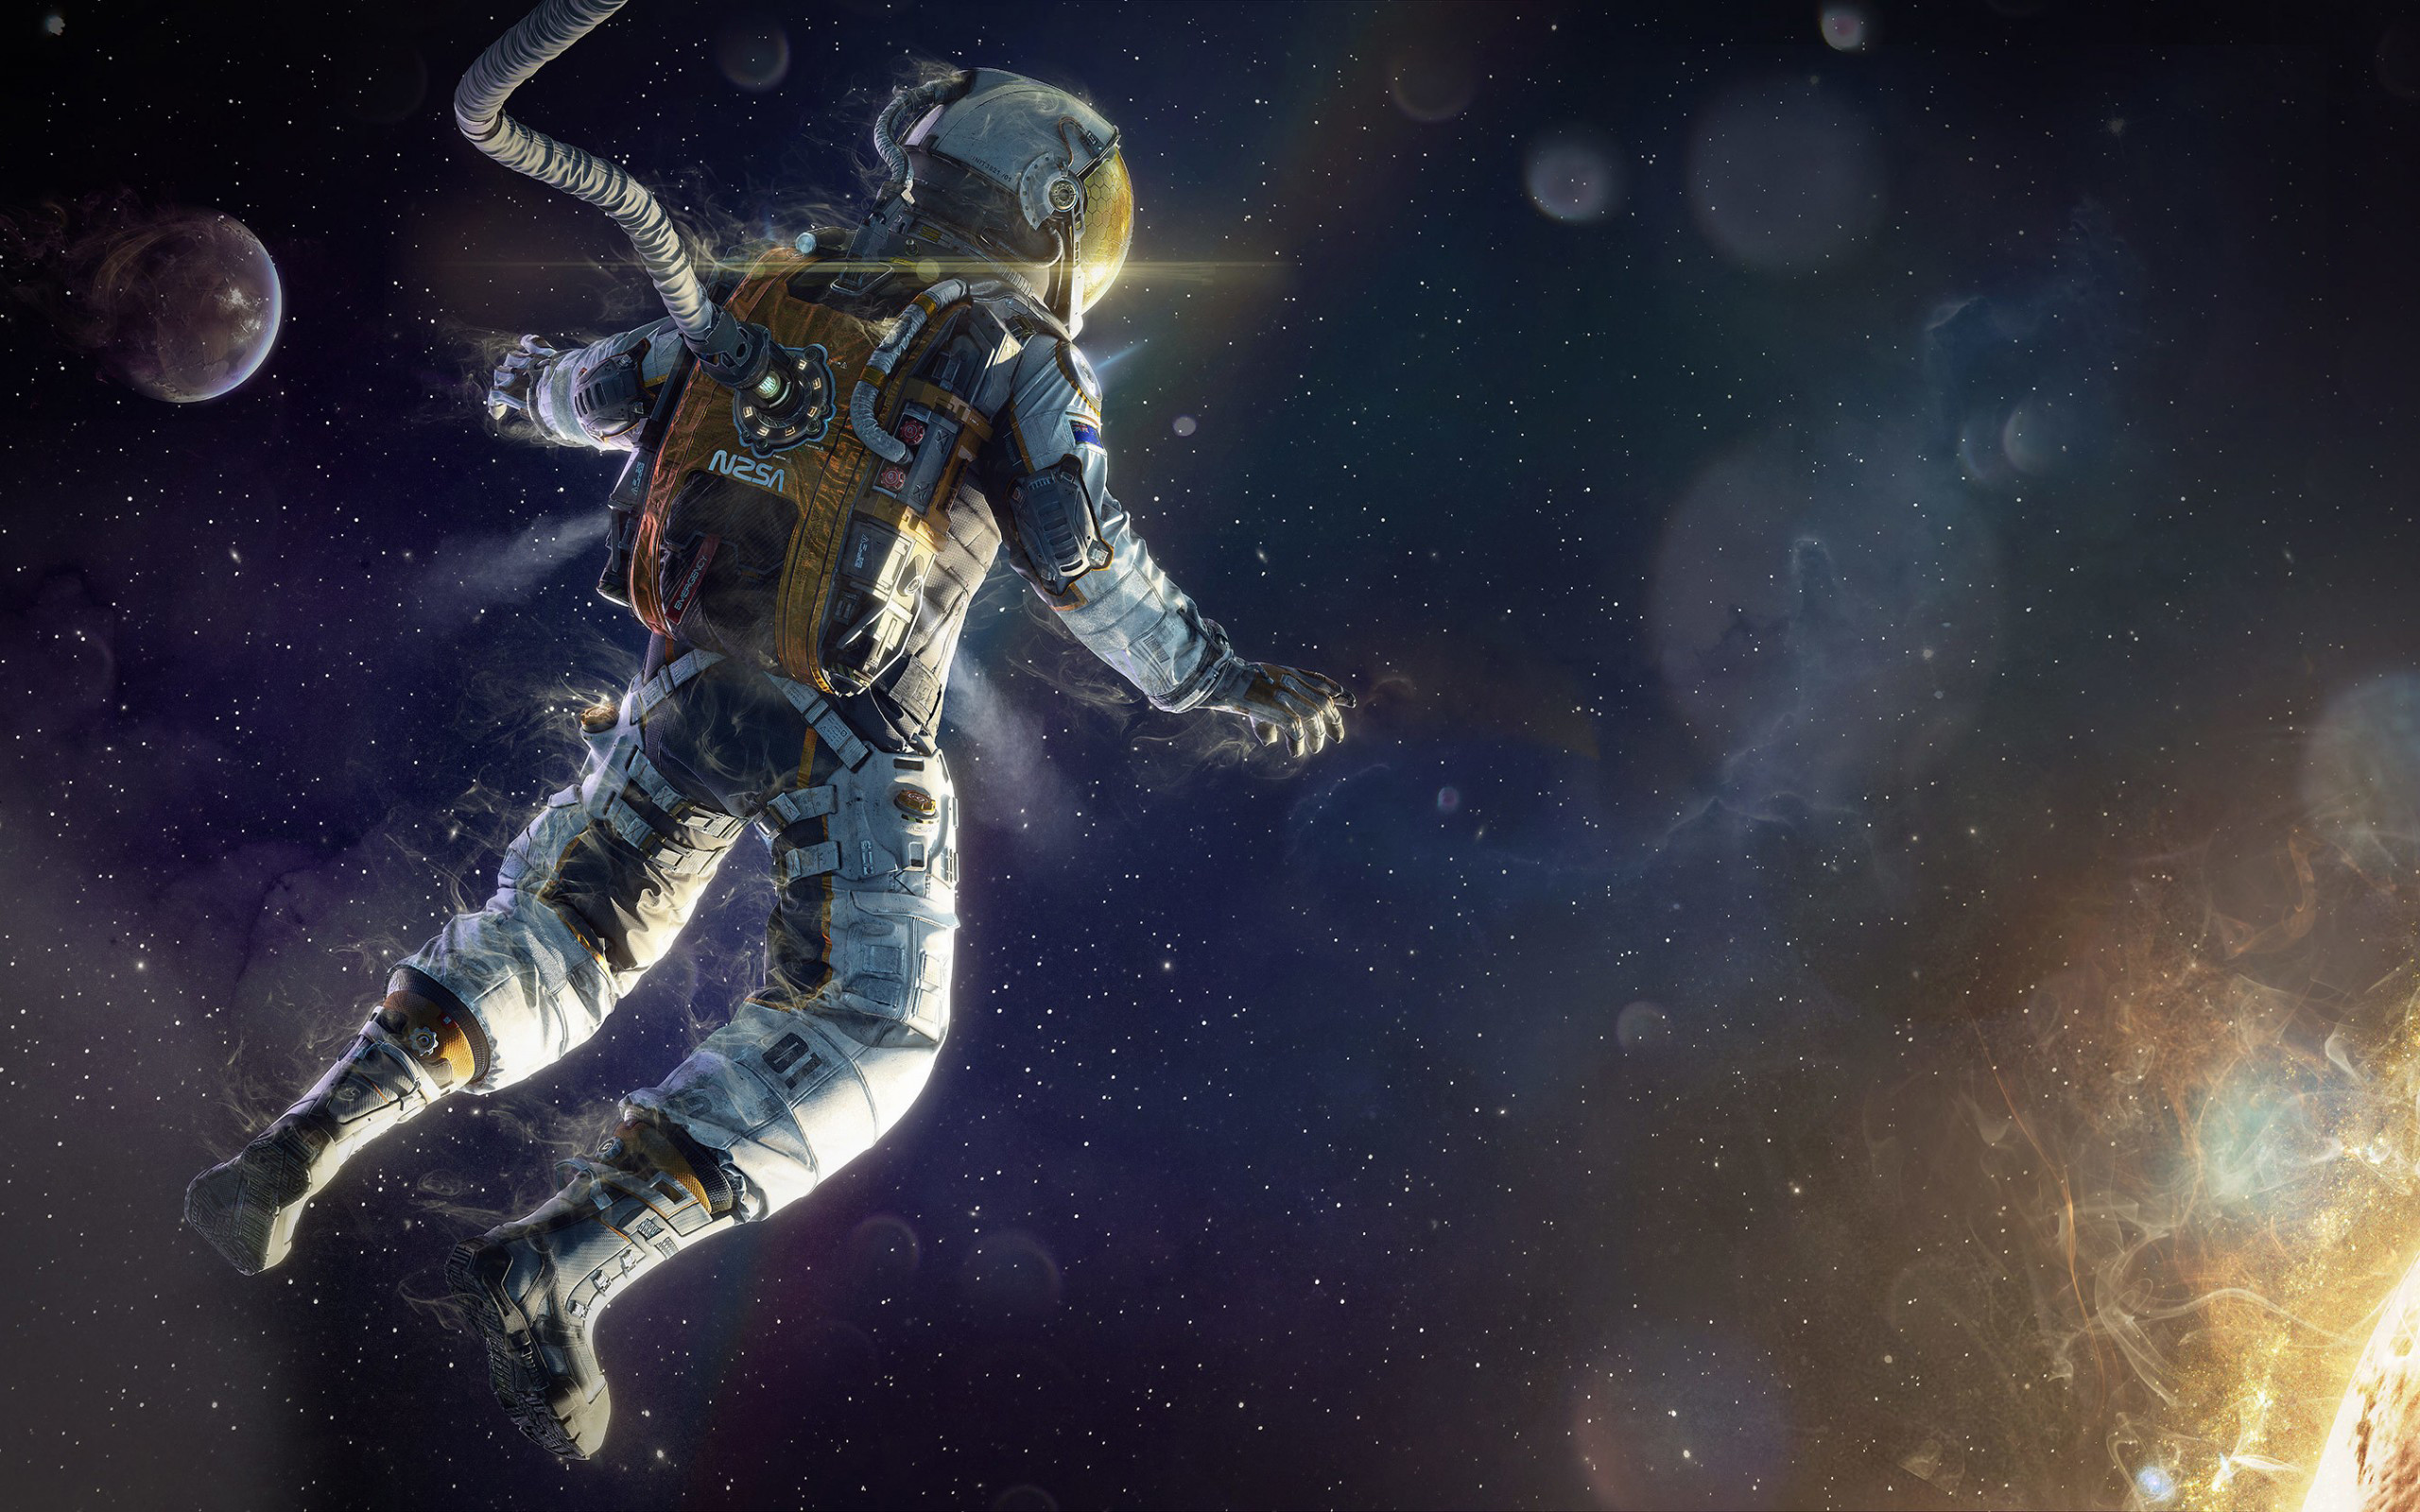 Astronauts In Space Wallpaper 62 Images